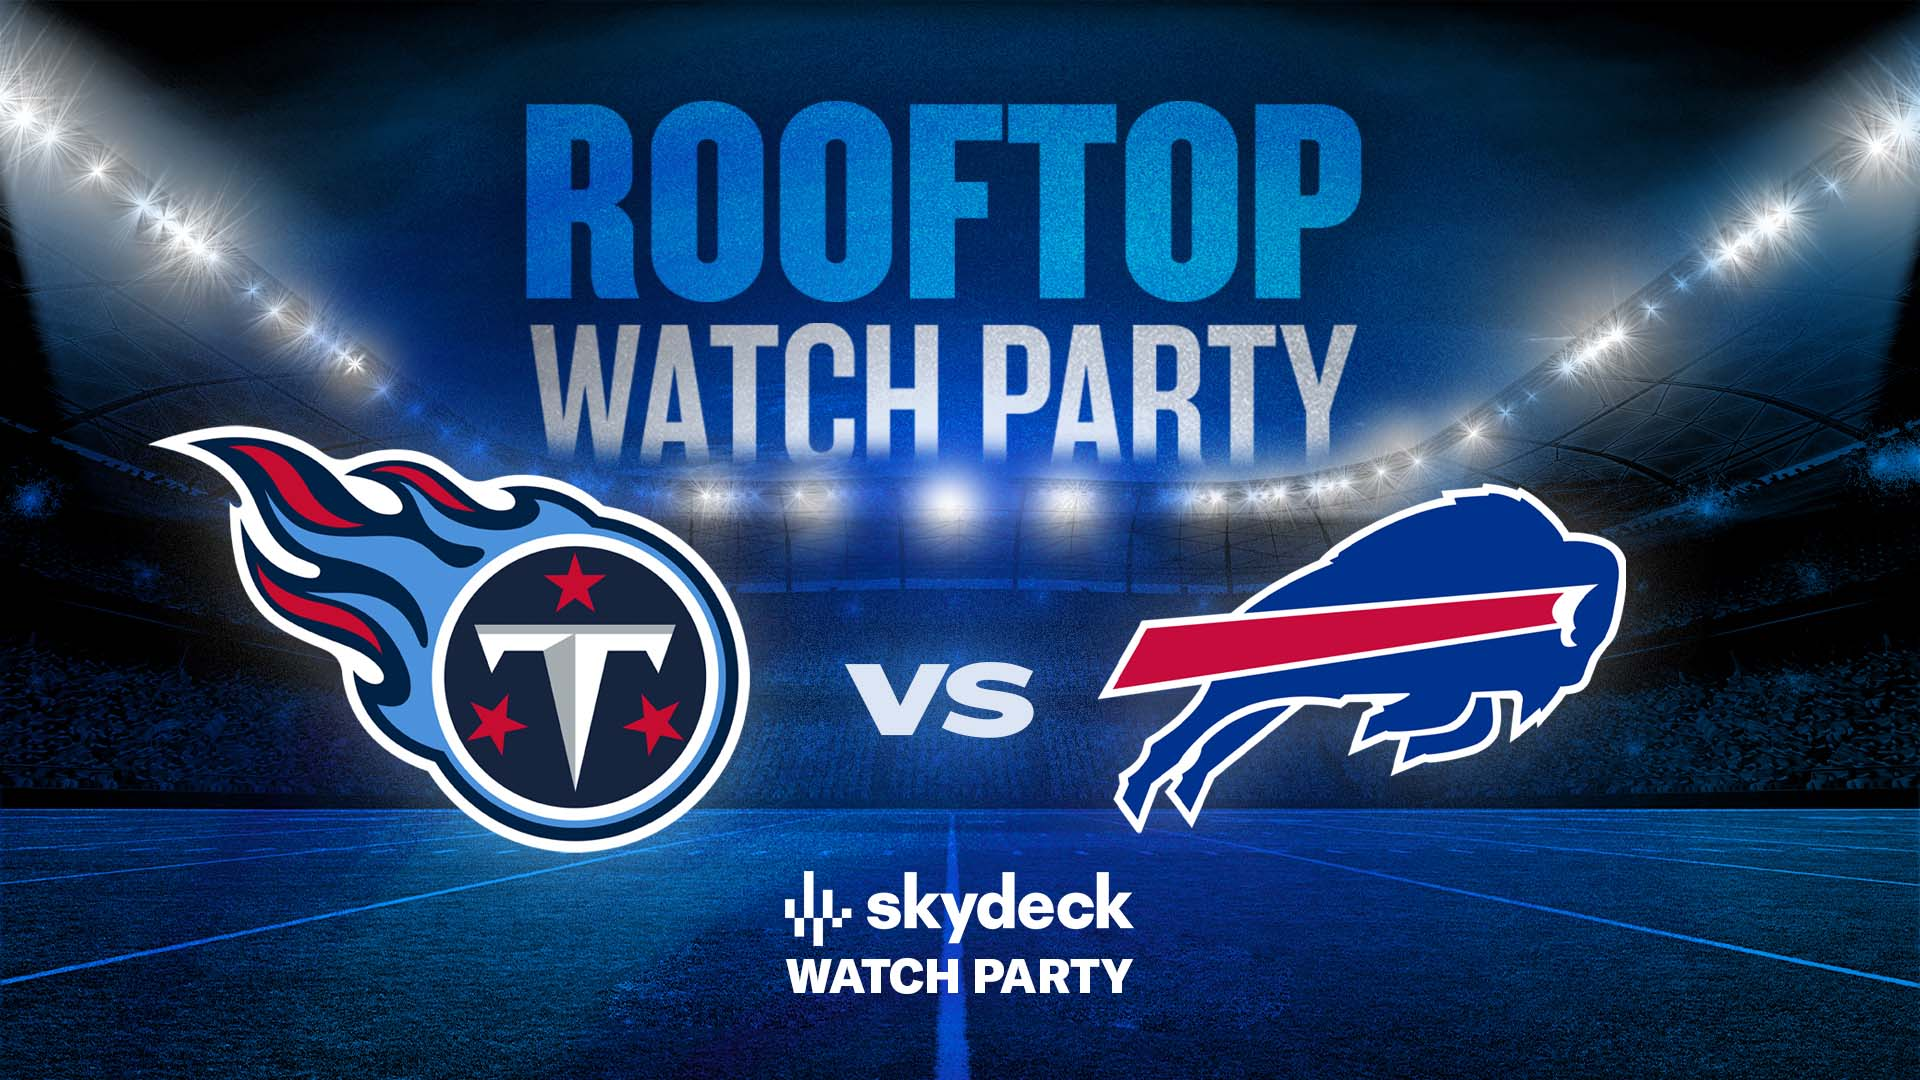 Promo image of Titans vs. Bills Skydeck Watch Party